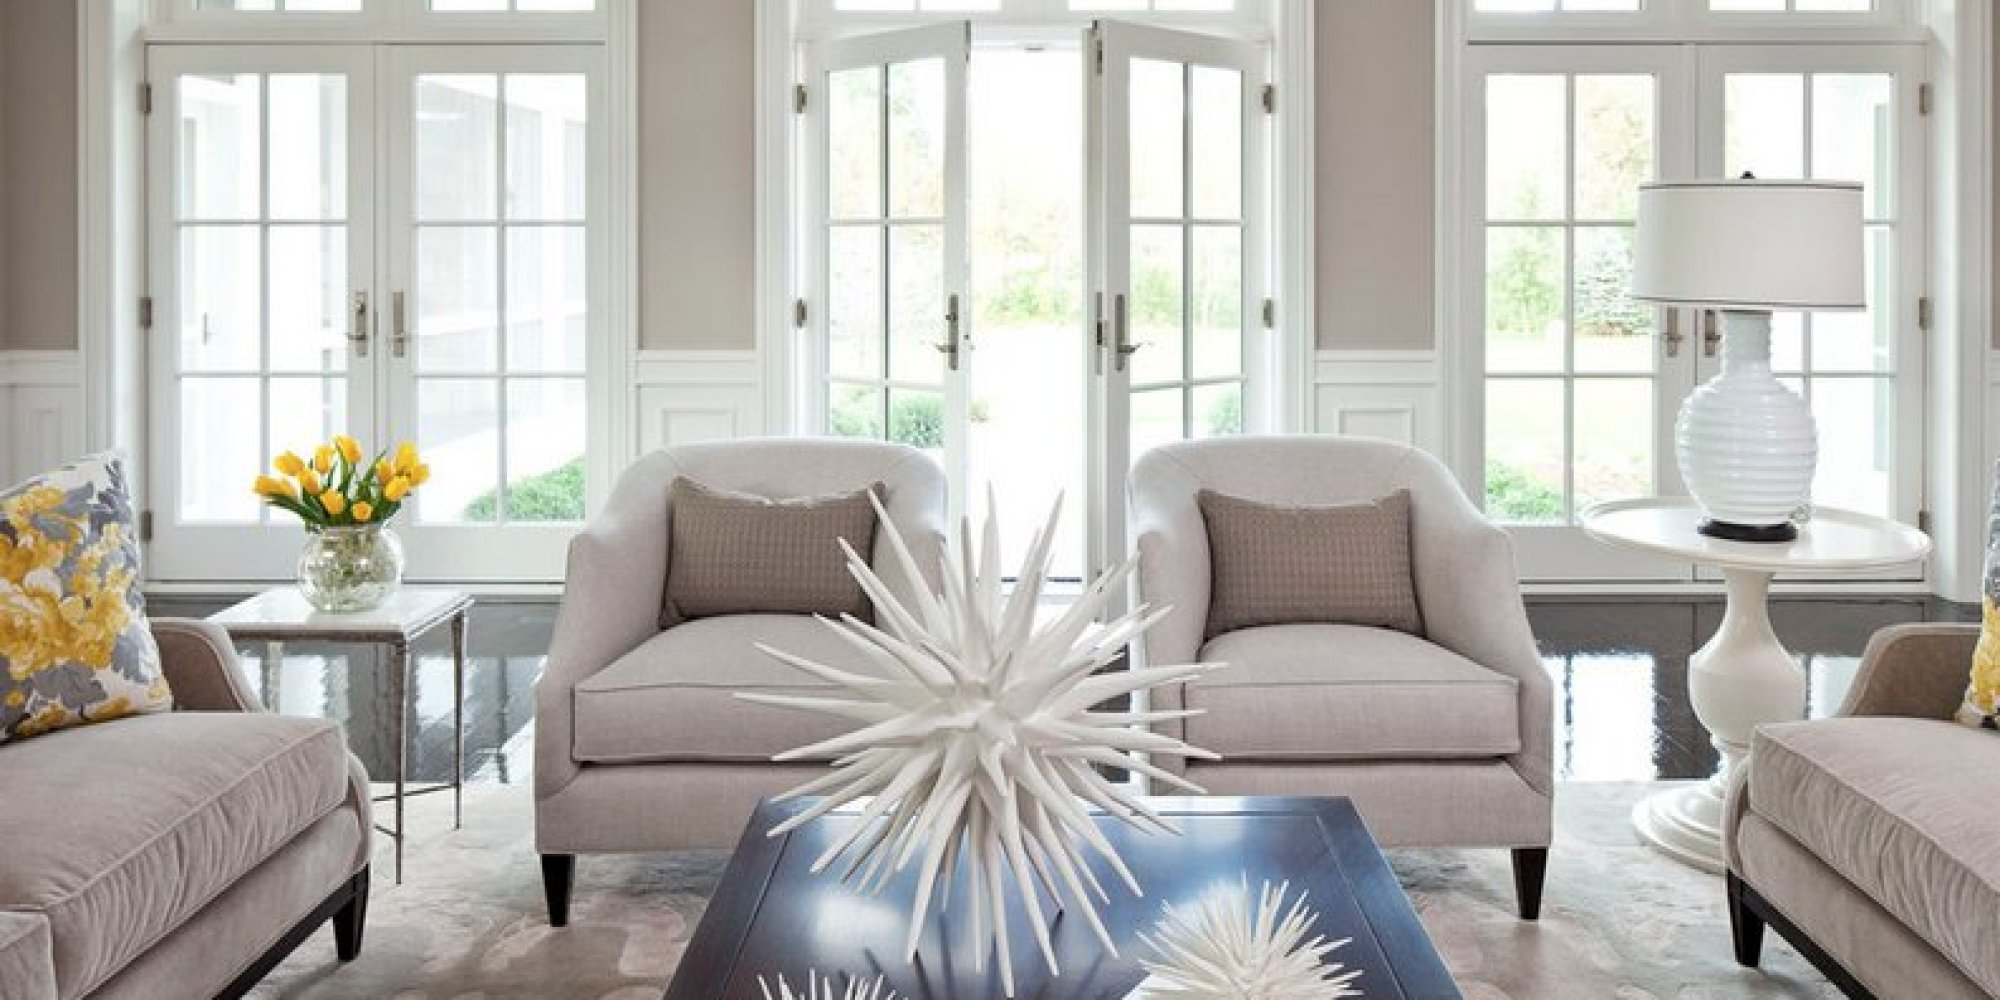 Wonderful The 8 Best Neutral Paint Colors Thatu0027ll Work In Any Home, No Matter The  Style (PHOTOS) | HuffPost